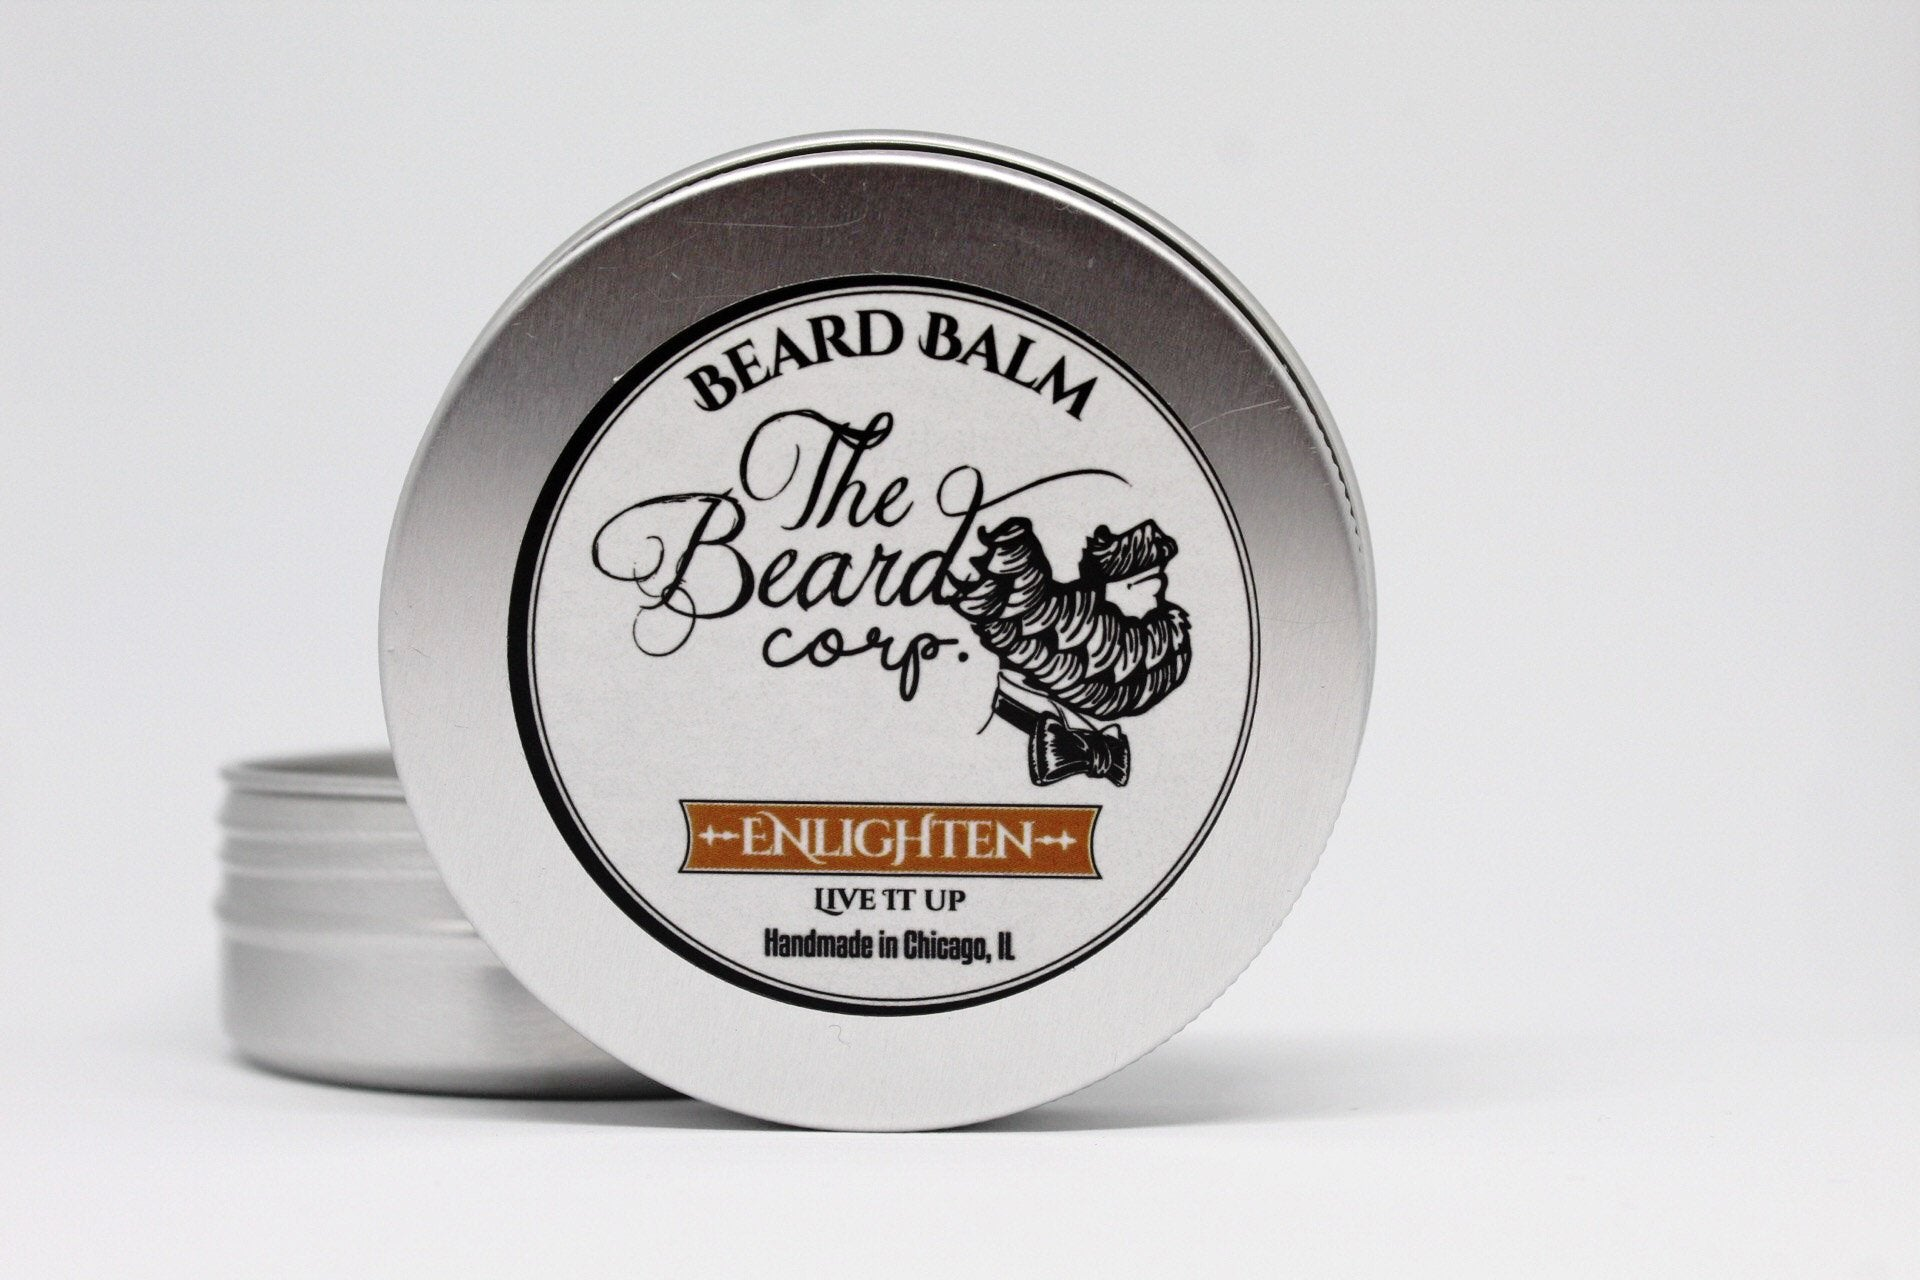 Enlighten Beard and Mustache Balm